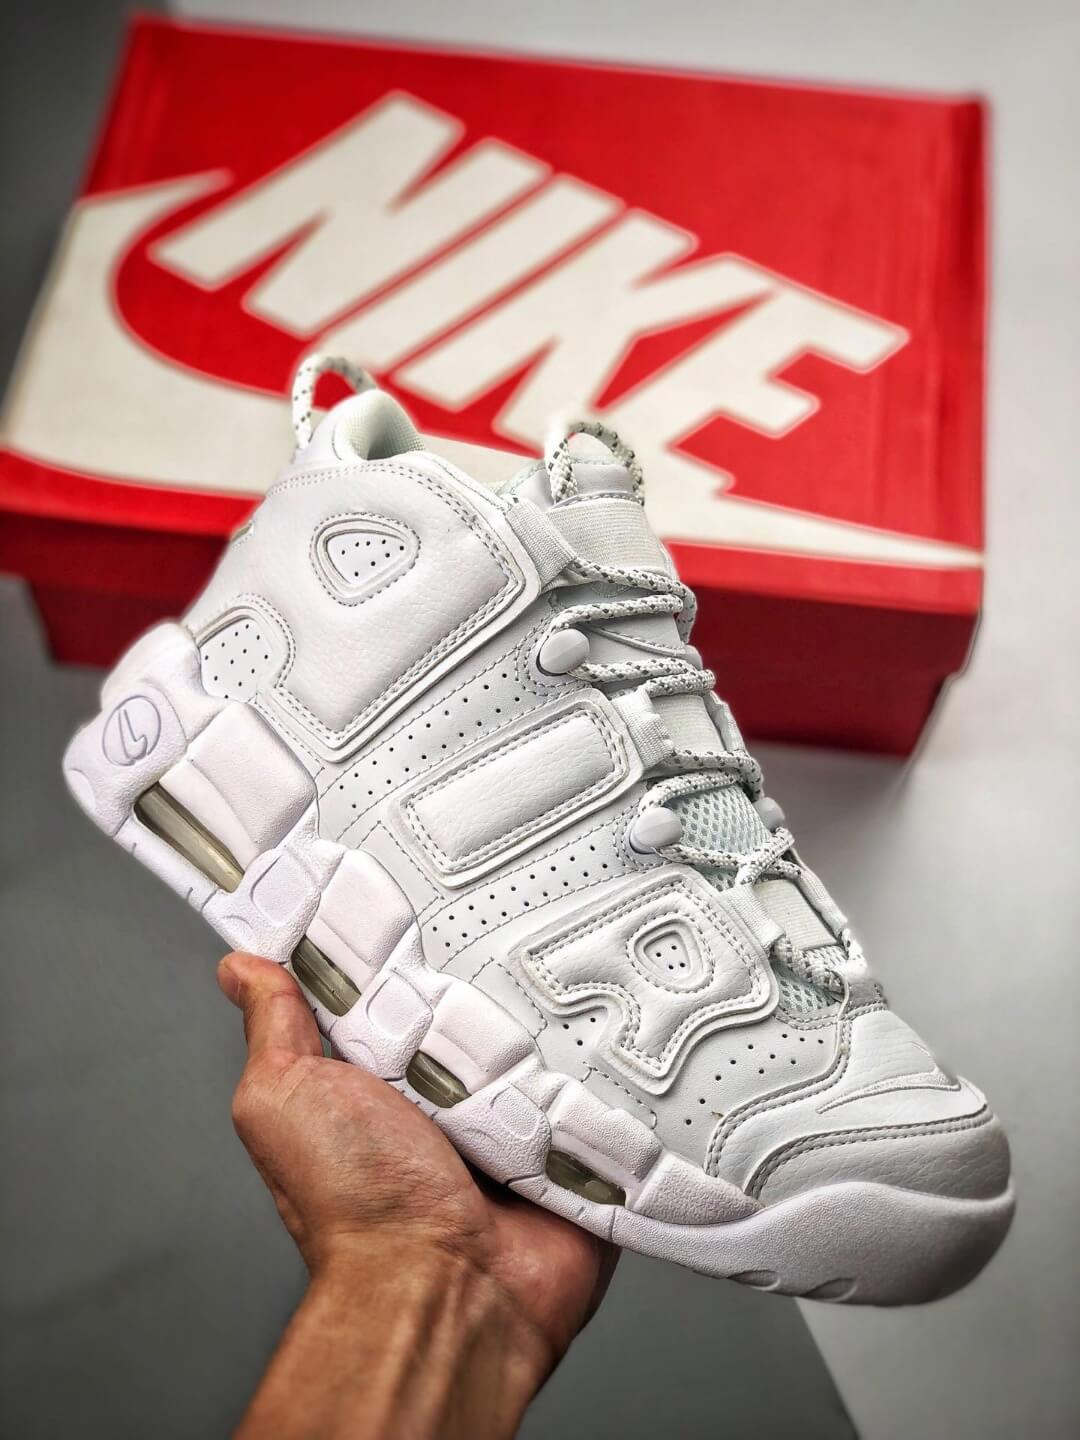 The Air More Uptempo 'Triple White' All